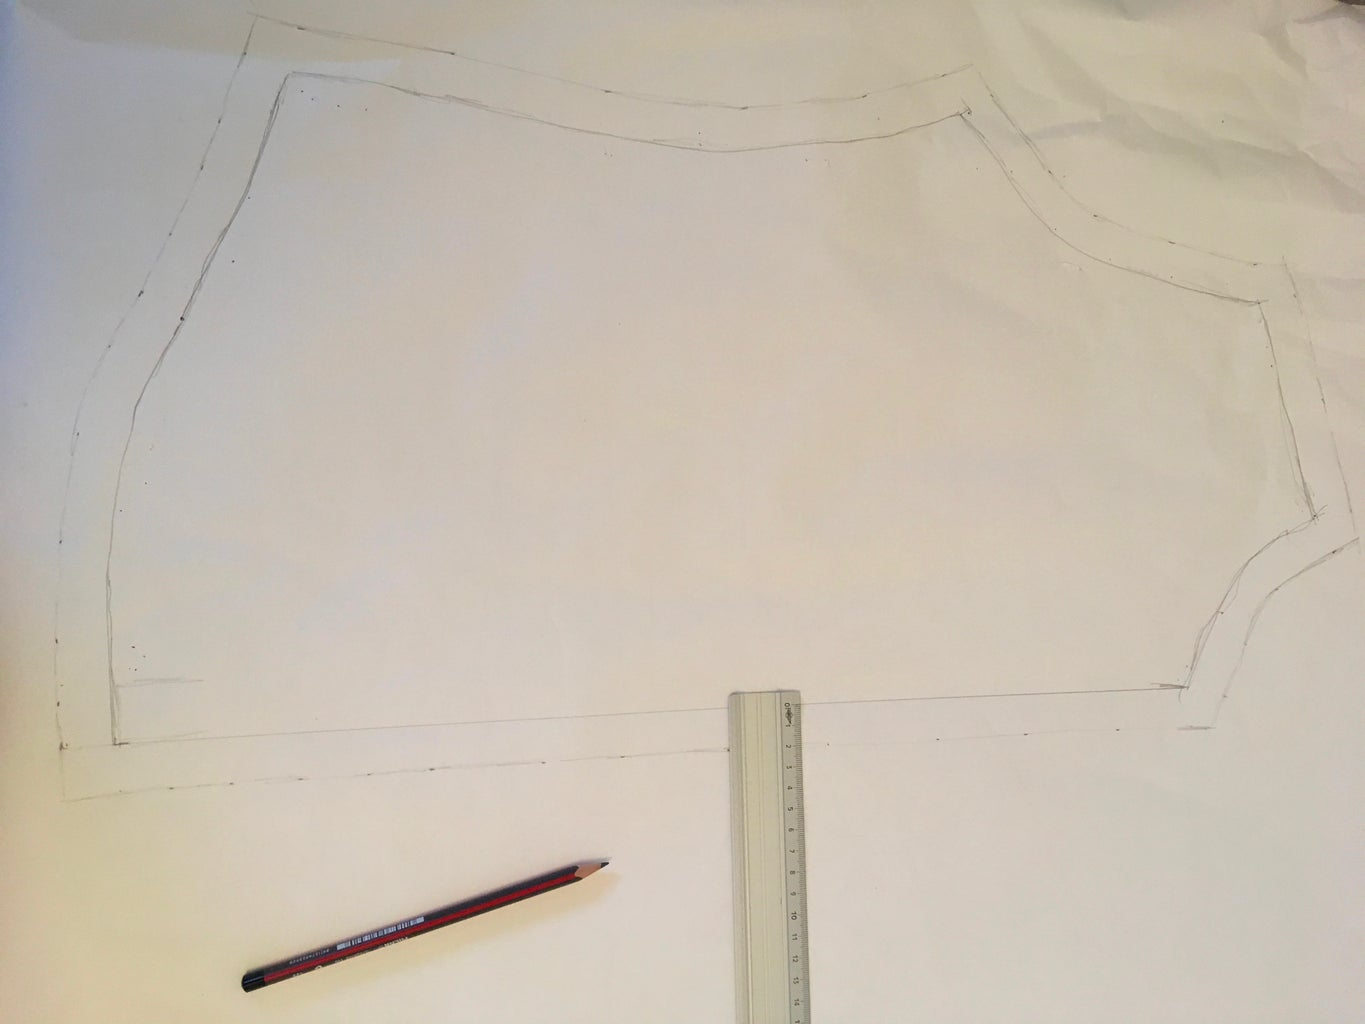 From Pins to Drawing, Make Your Margin & Seam Allowance